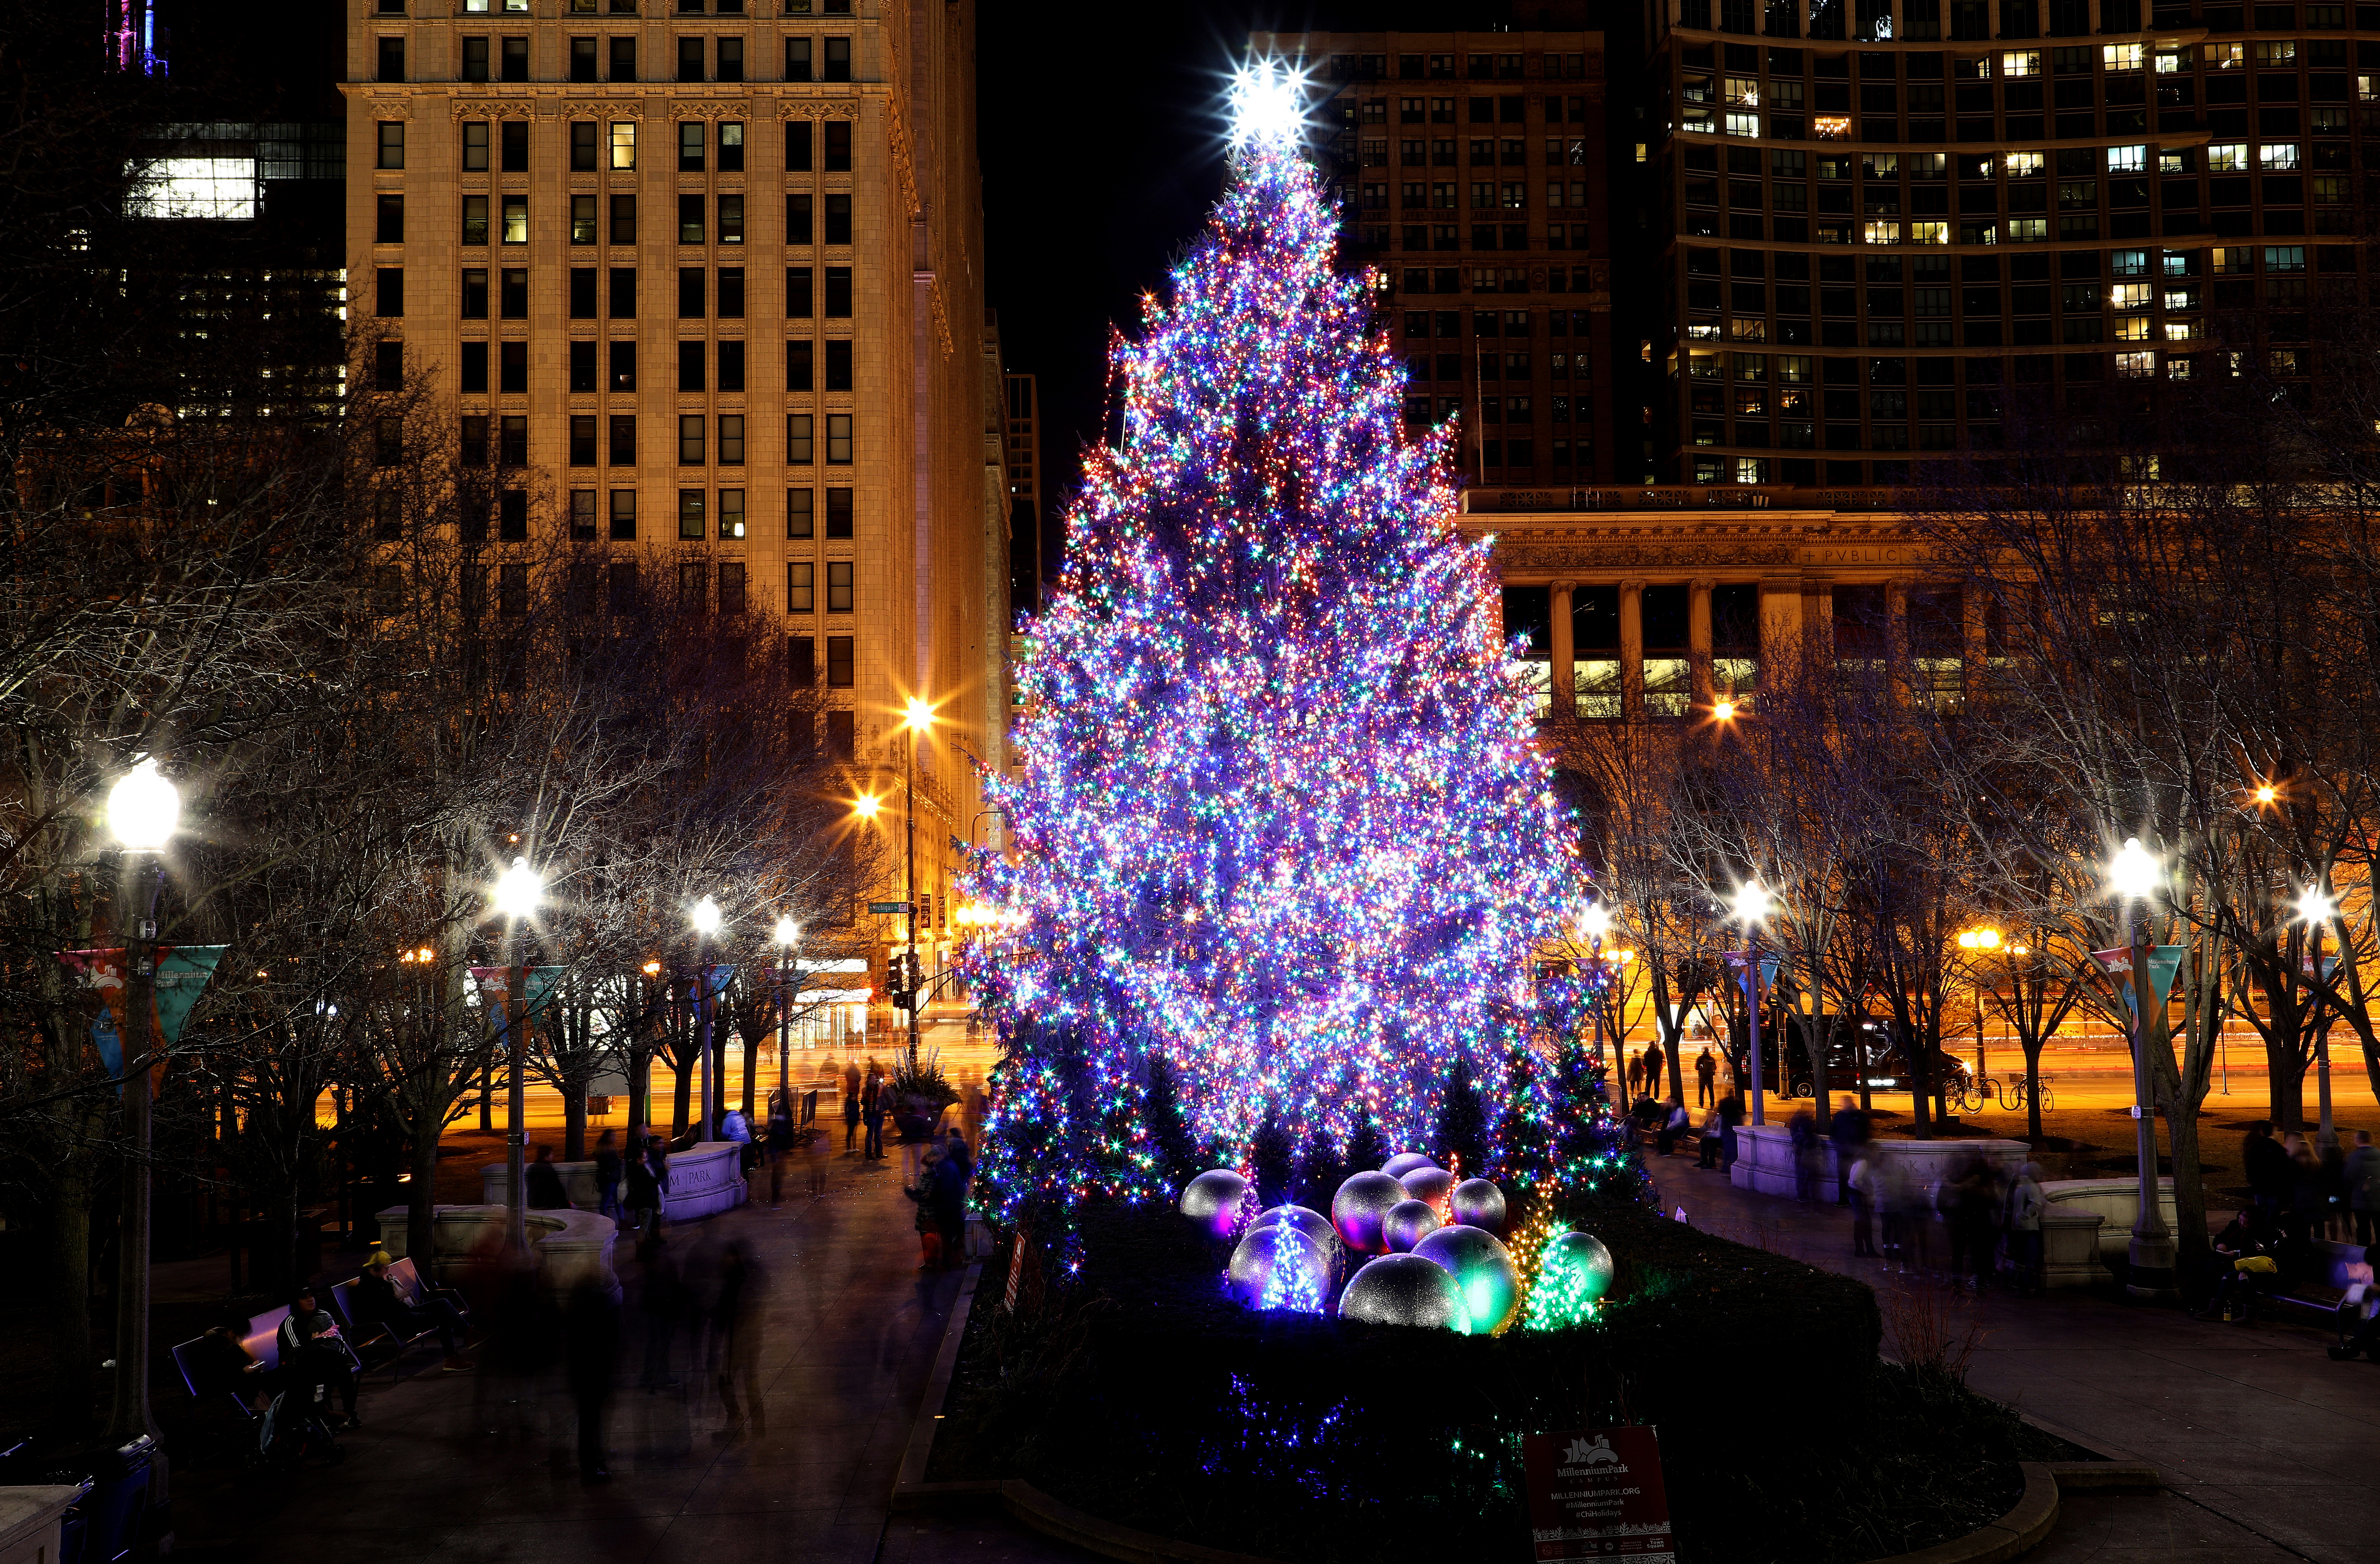 A brightly lit Christmas tree in a city park at night.